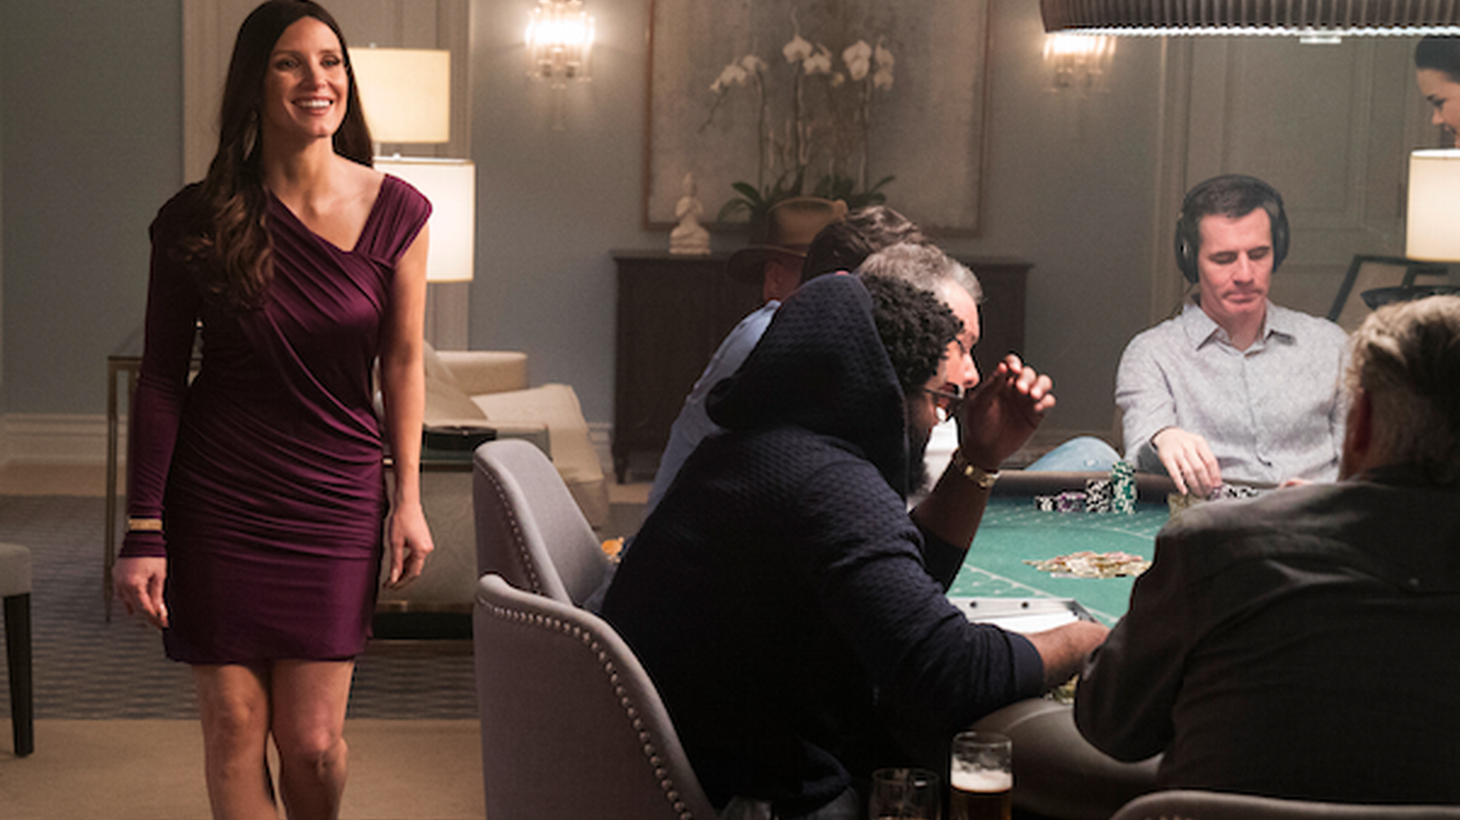 """Molly Bloom built and ran high stakes poker games in LA and New York. The games featured Hollywood stars, hedge fund managers and politicians. She was eventually arrested and indicted. Her story is the focus of the new movie """"Molly's Game."""""""